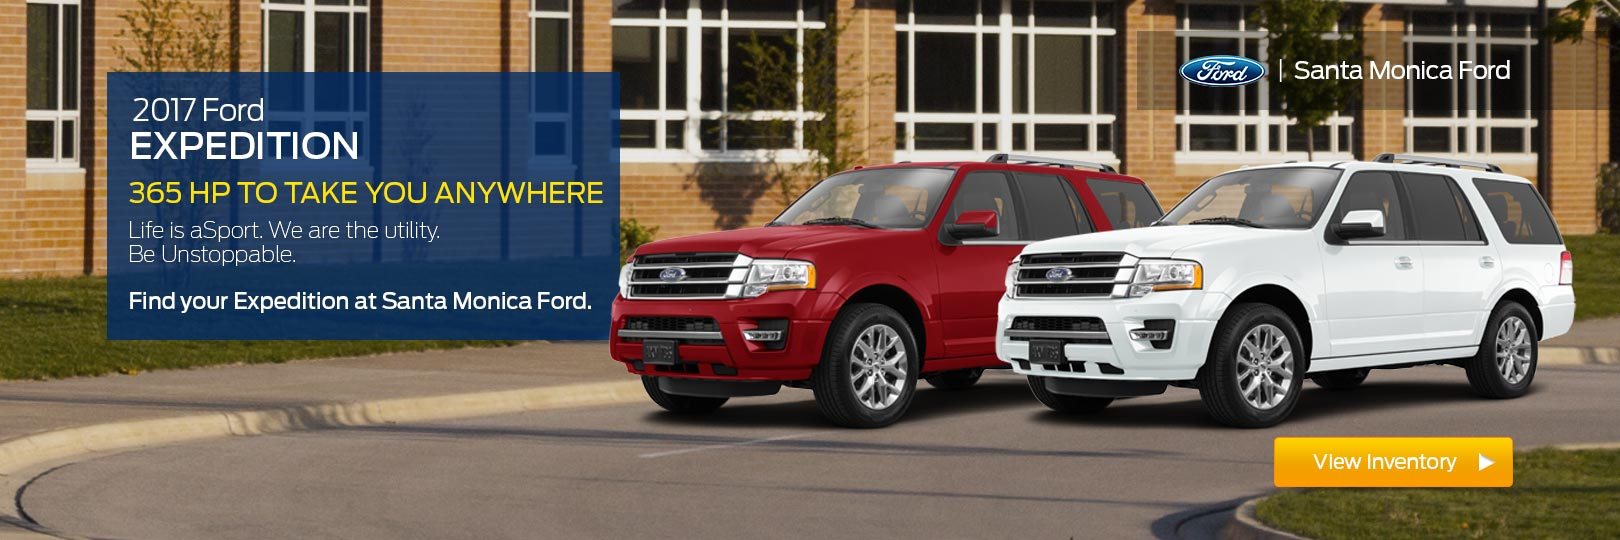 Dont Forget To Keep An Eye Out For Our Specials On The Ford Expedition